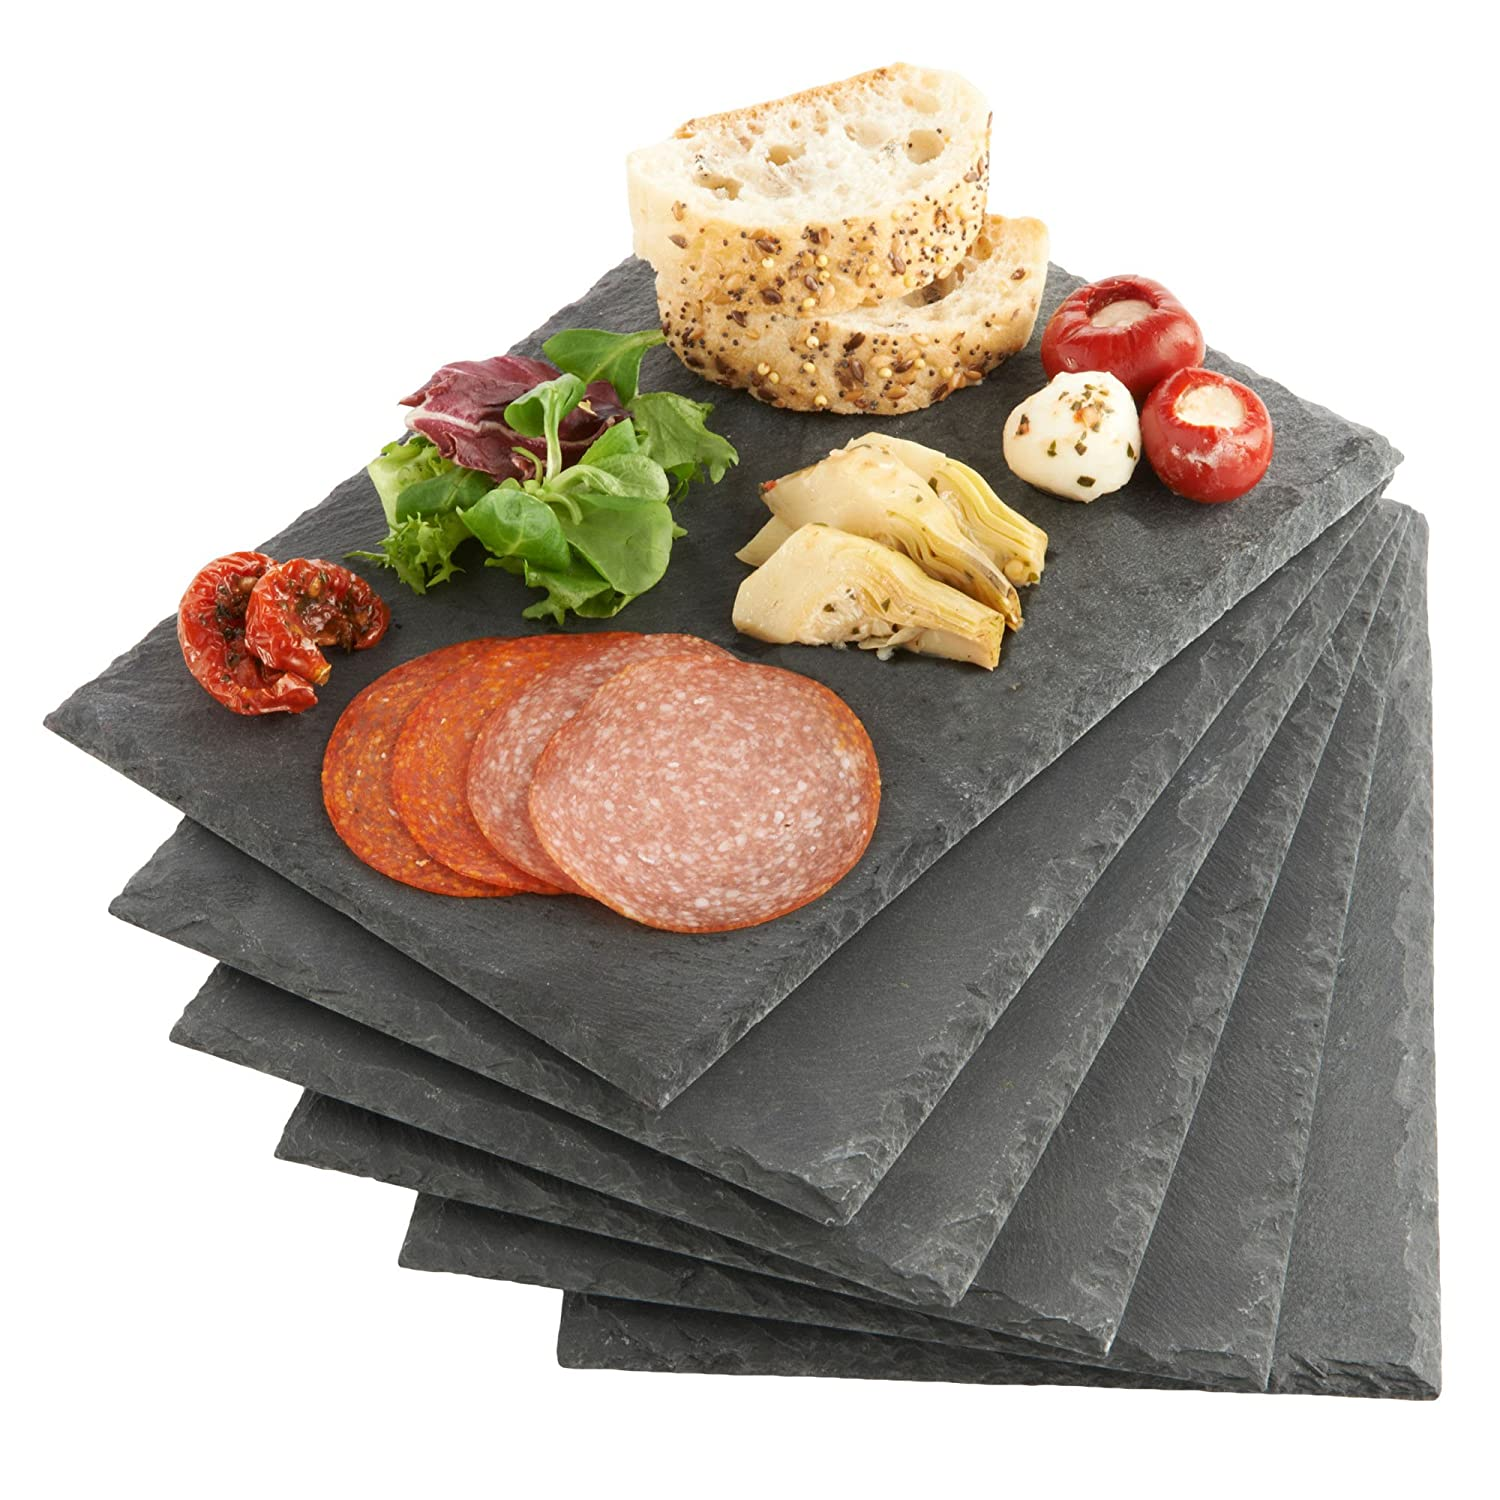 VonShef Set of 6 Mini Slate Cheese Boards for Dinner Parties and Entertaining Amazon.ca Home \u0026 Kitchen  sc 1 st  Amazon.ca & VonShef Set of 6 Mini Slate Cheese Boards for Dinner Parties and ...